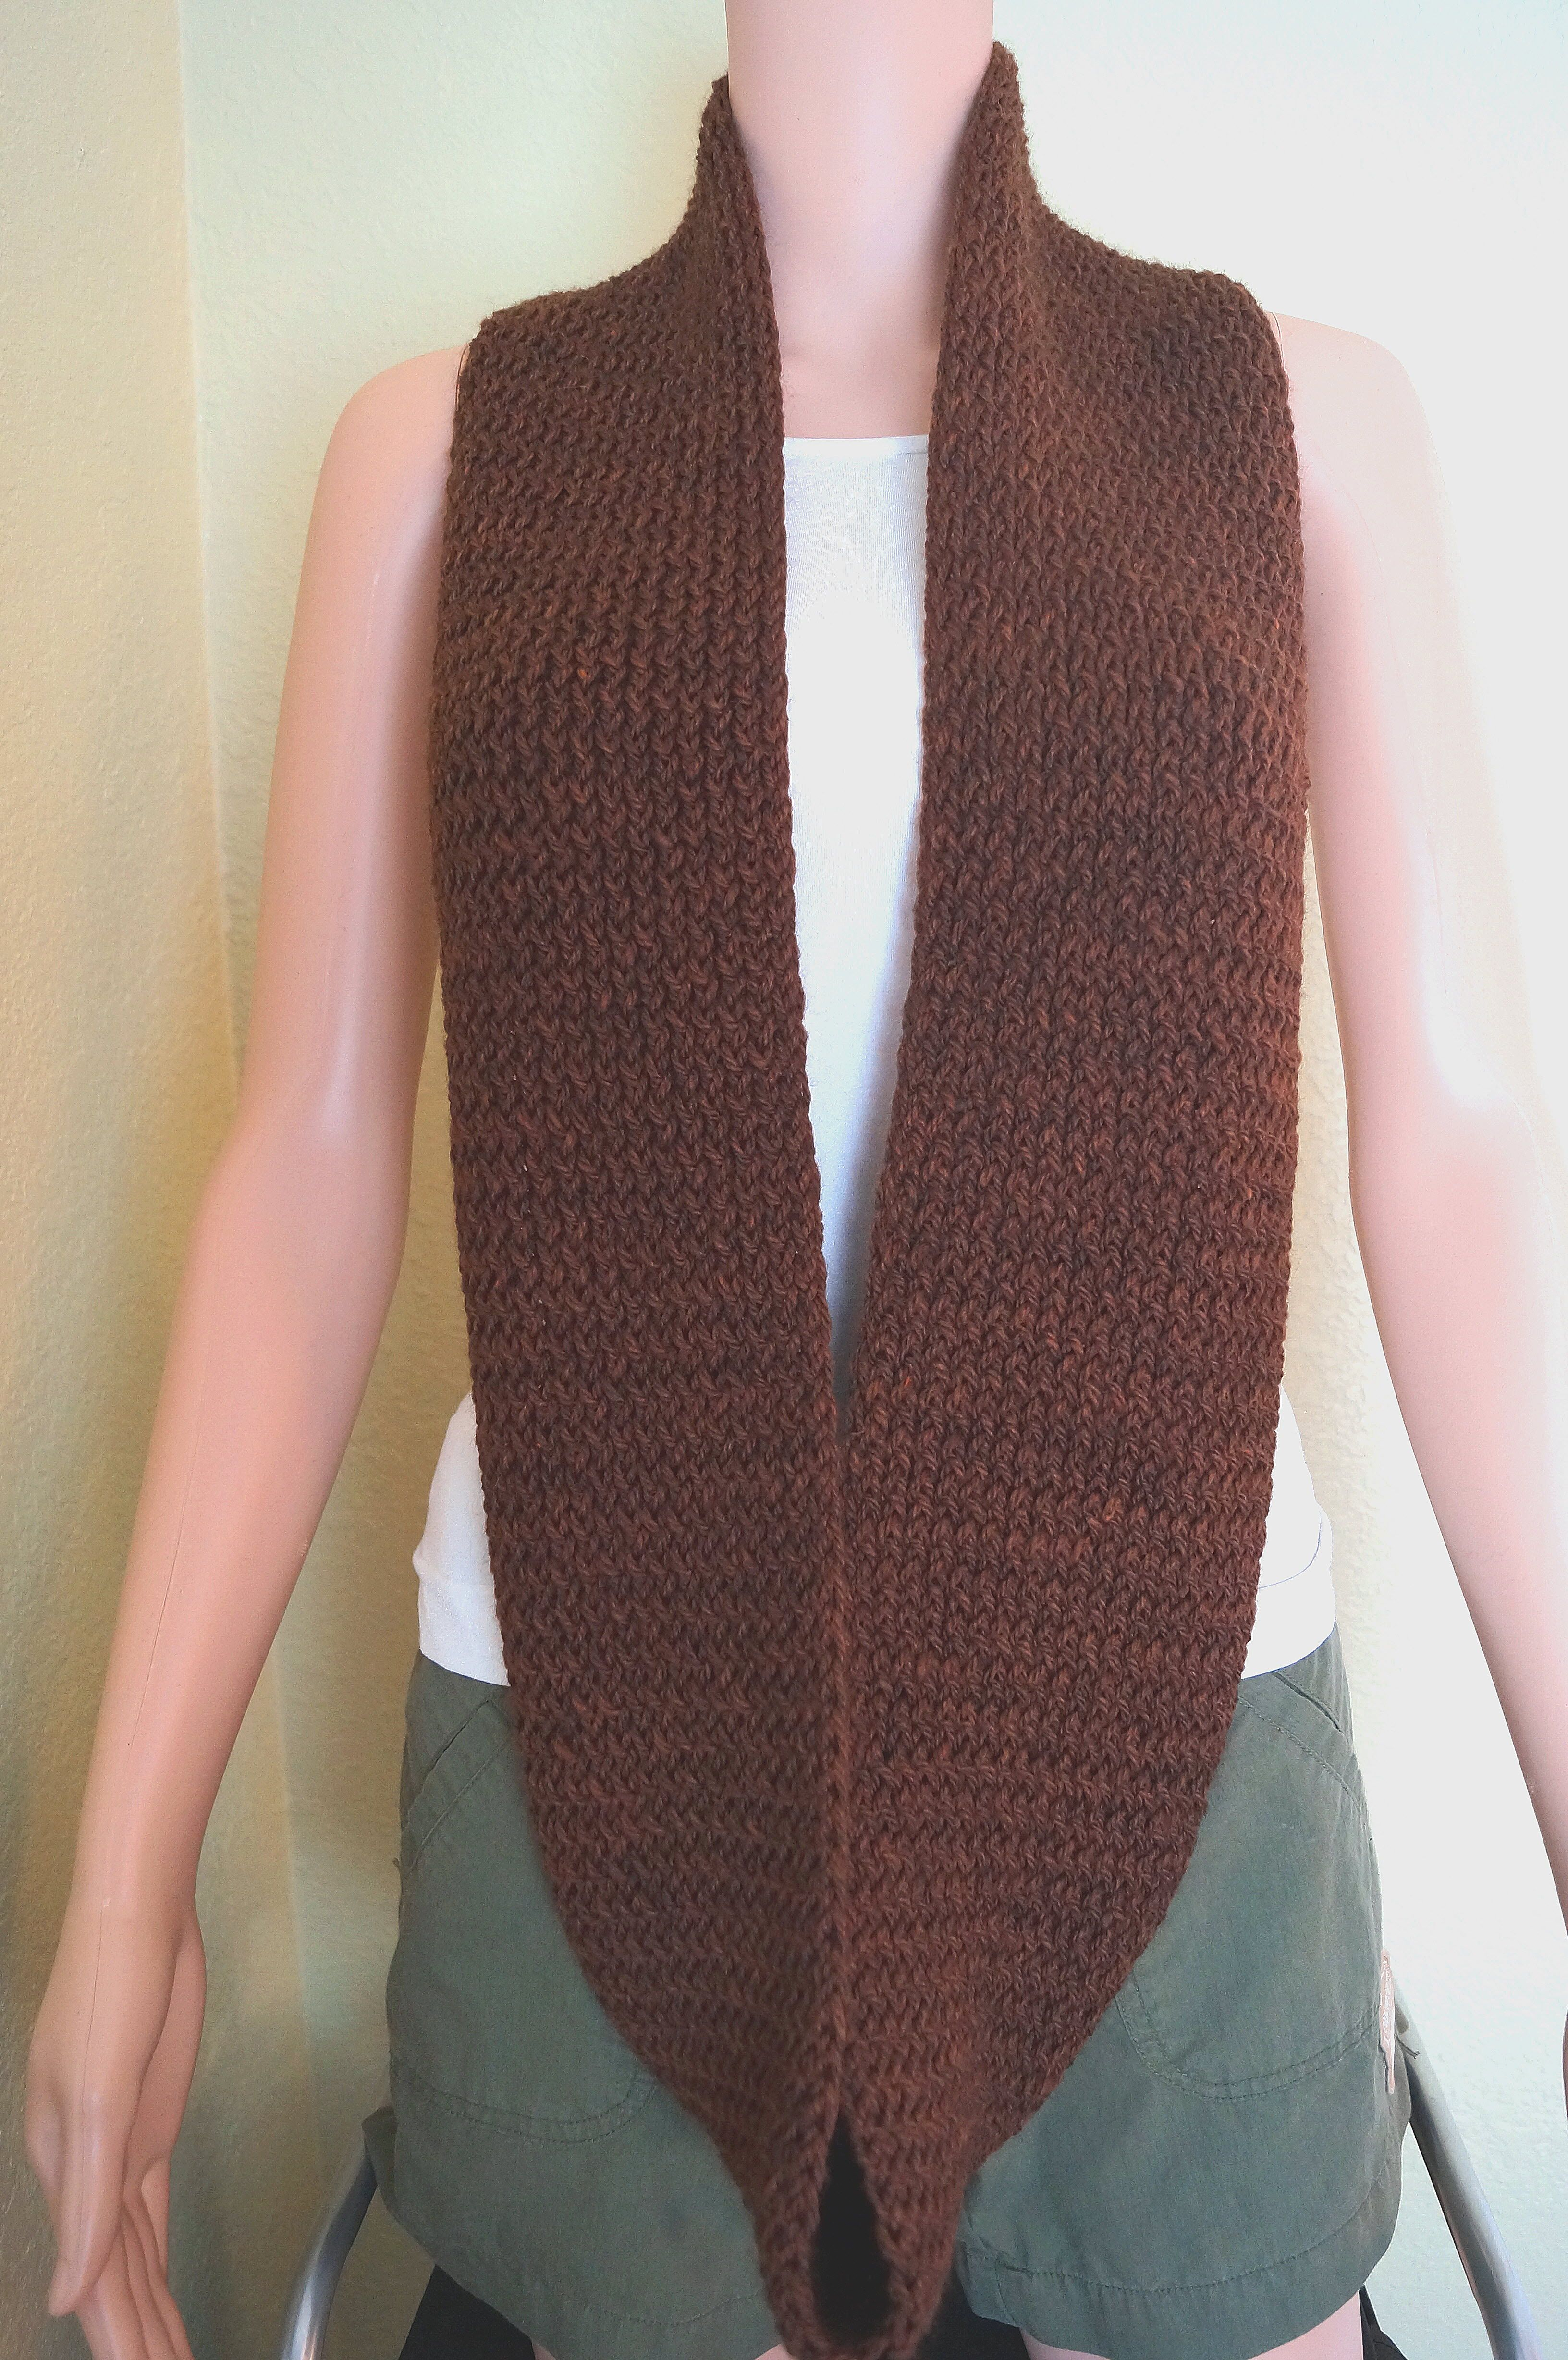 Infinity Scarf Loom Knitting Pattern For Beginners : Loom Knit Infinity Scarf Its A Family Affair Designs ...